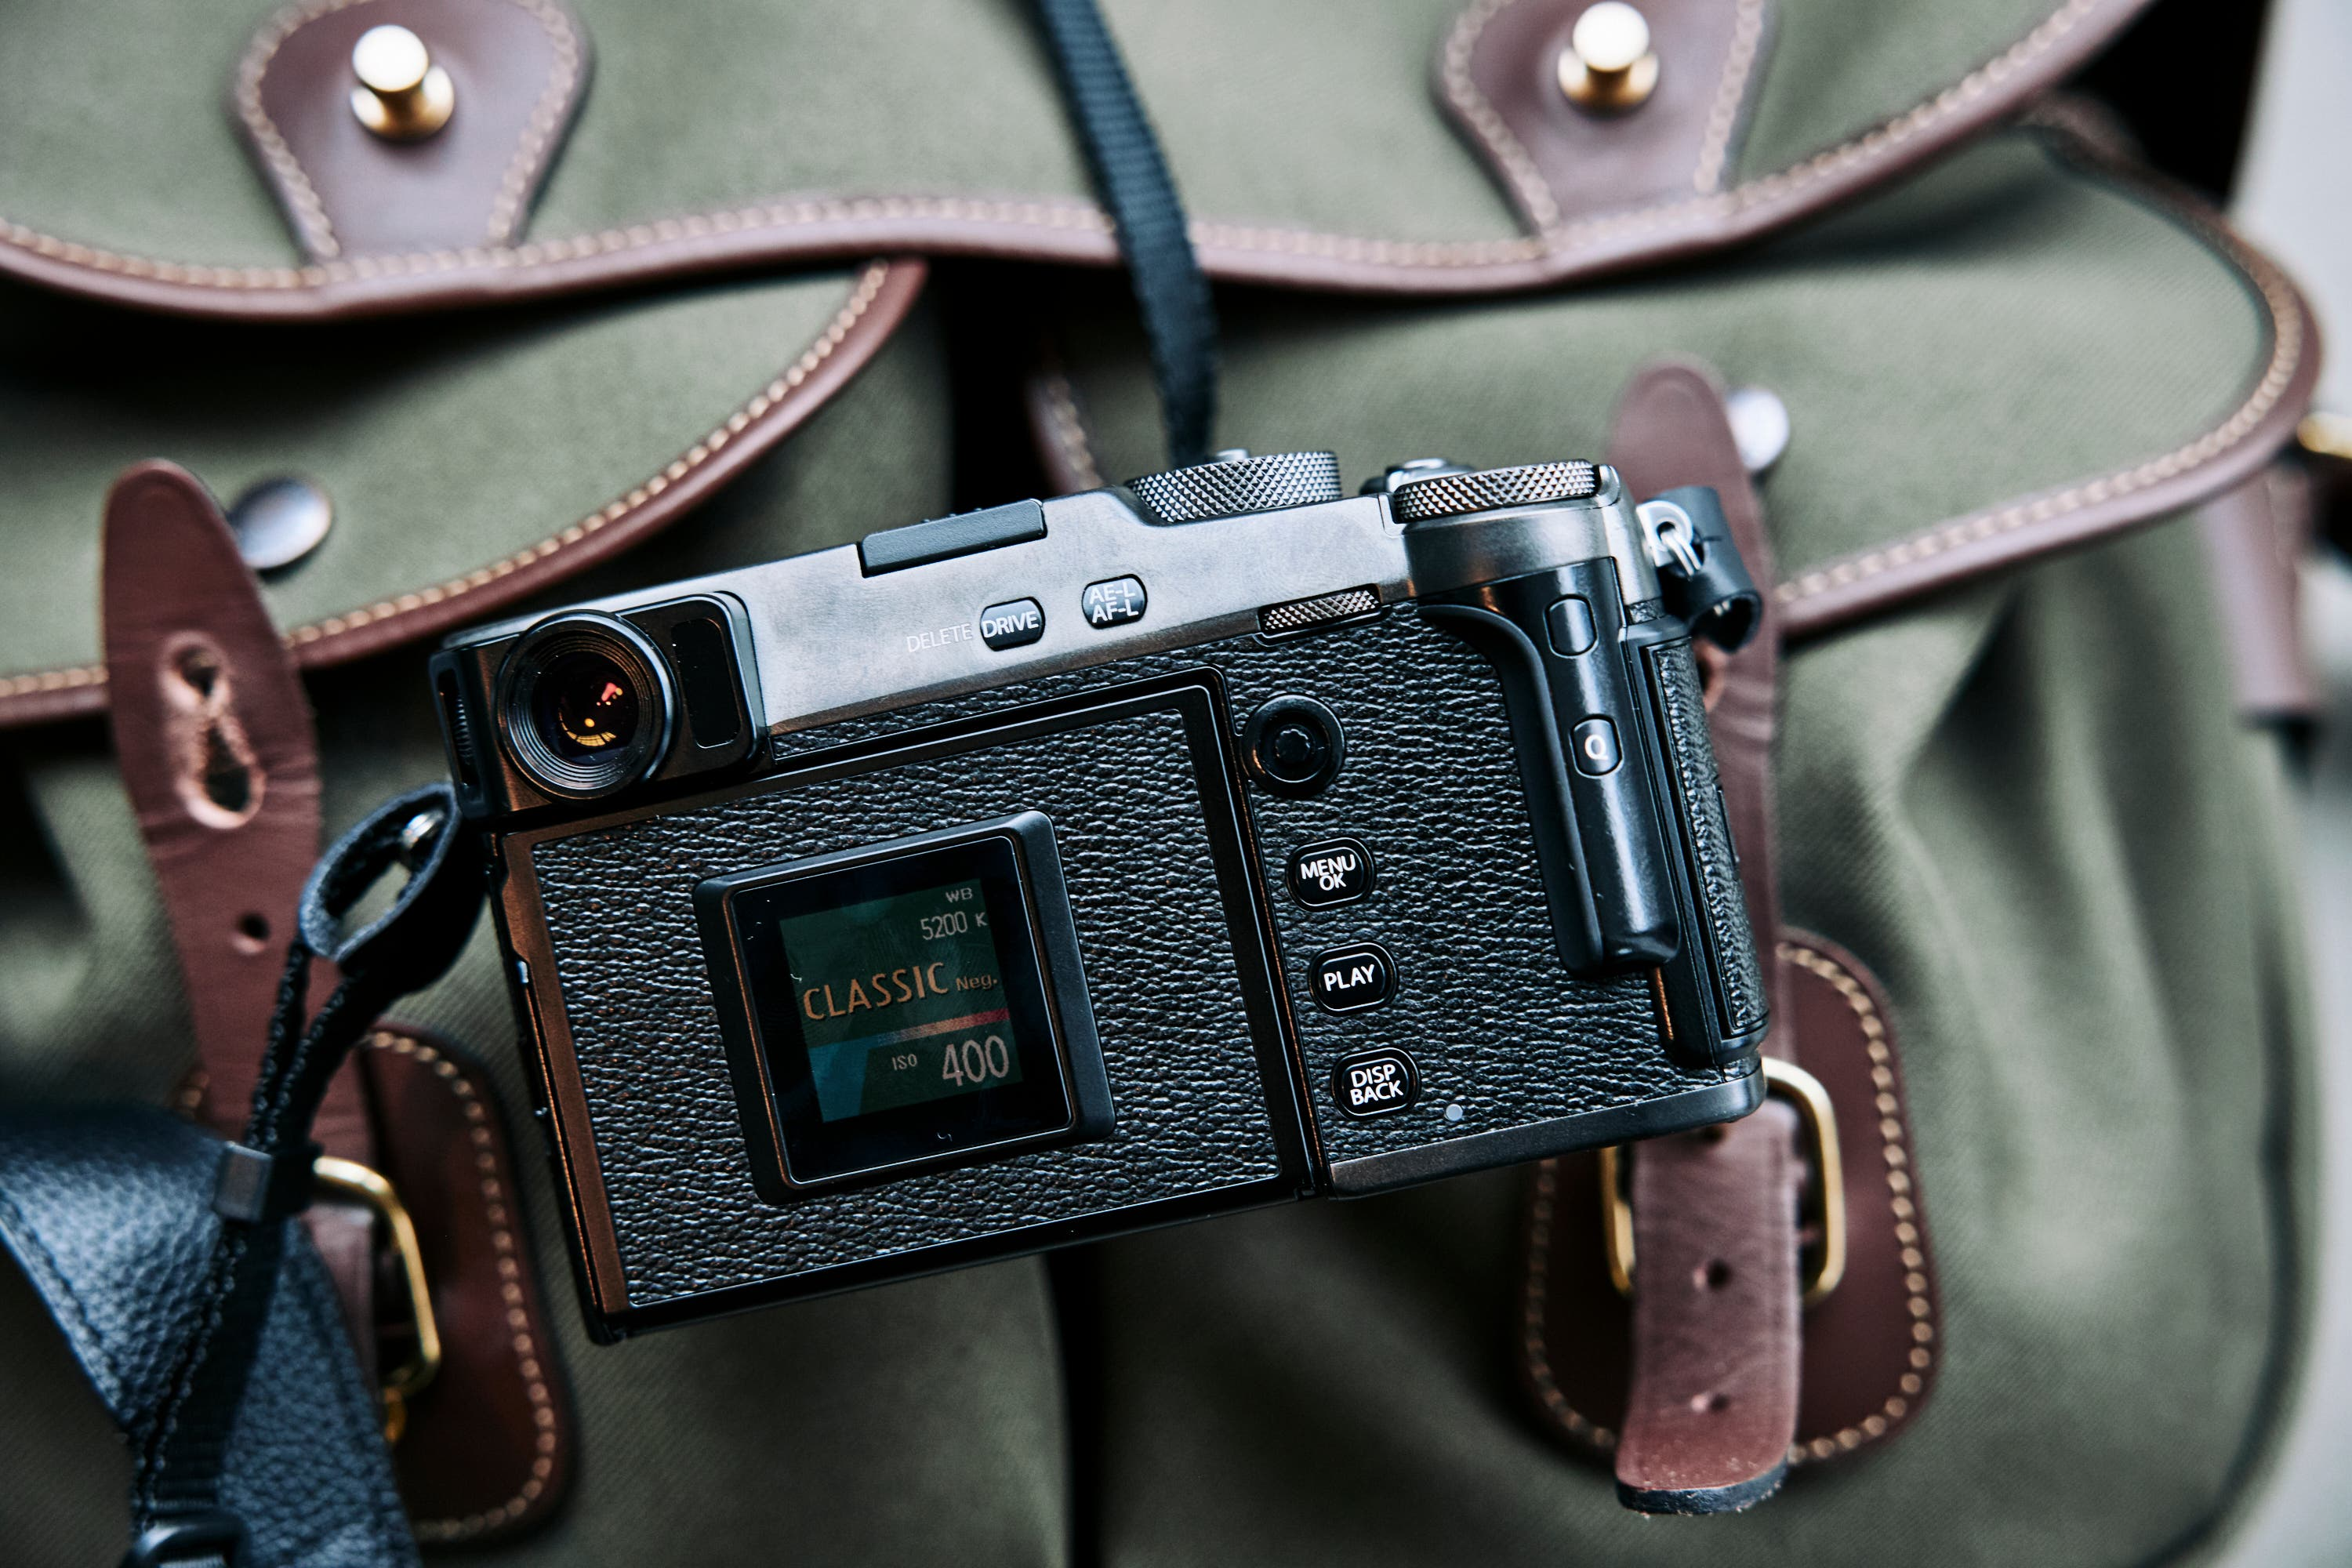 How Bad Is the Fujifilm X Pro 3 Sub-Monitor Issue?